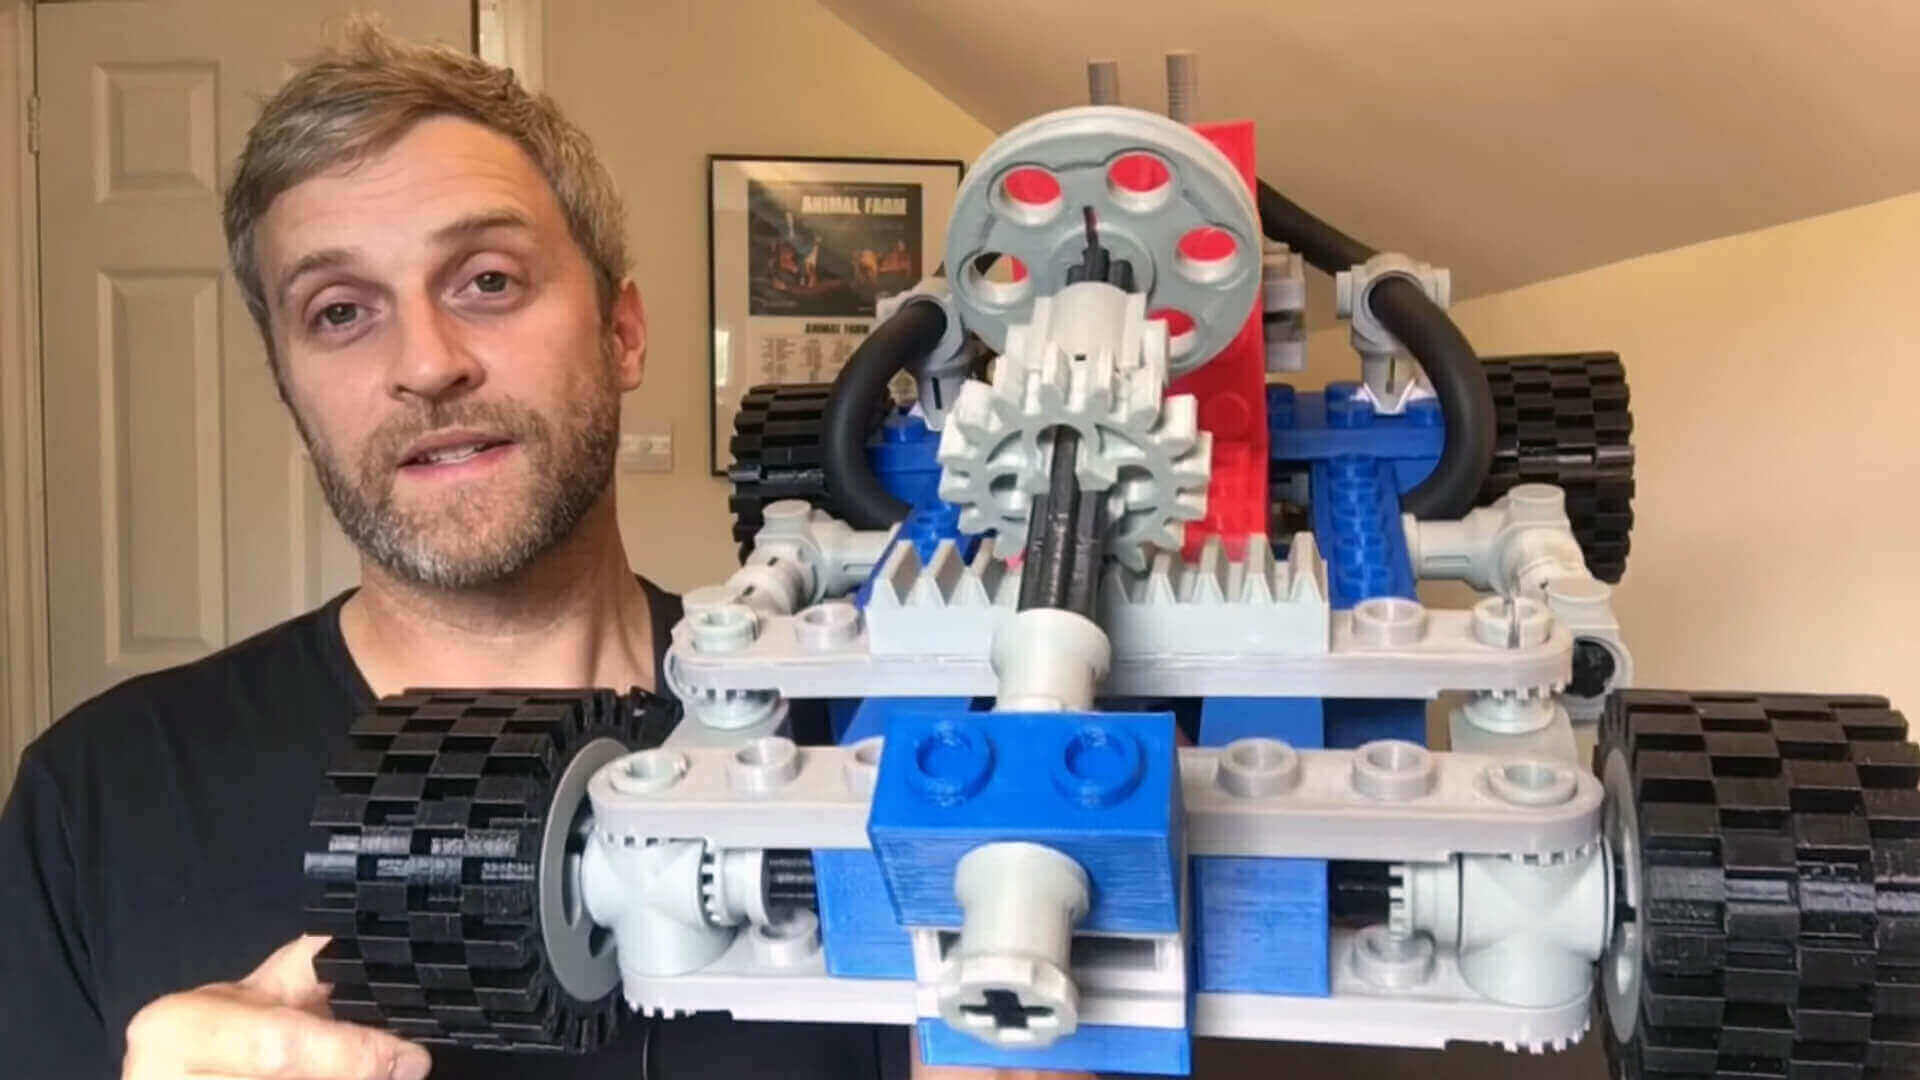 Watch this YouTuber Assemble a Giant 3D Printed Lego Go-Kart | All3DP